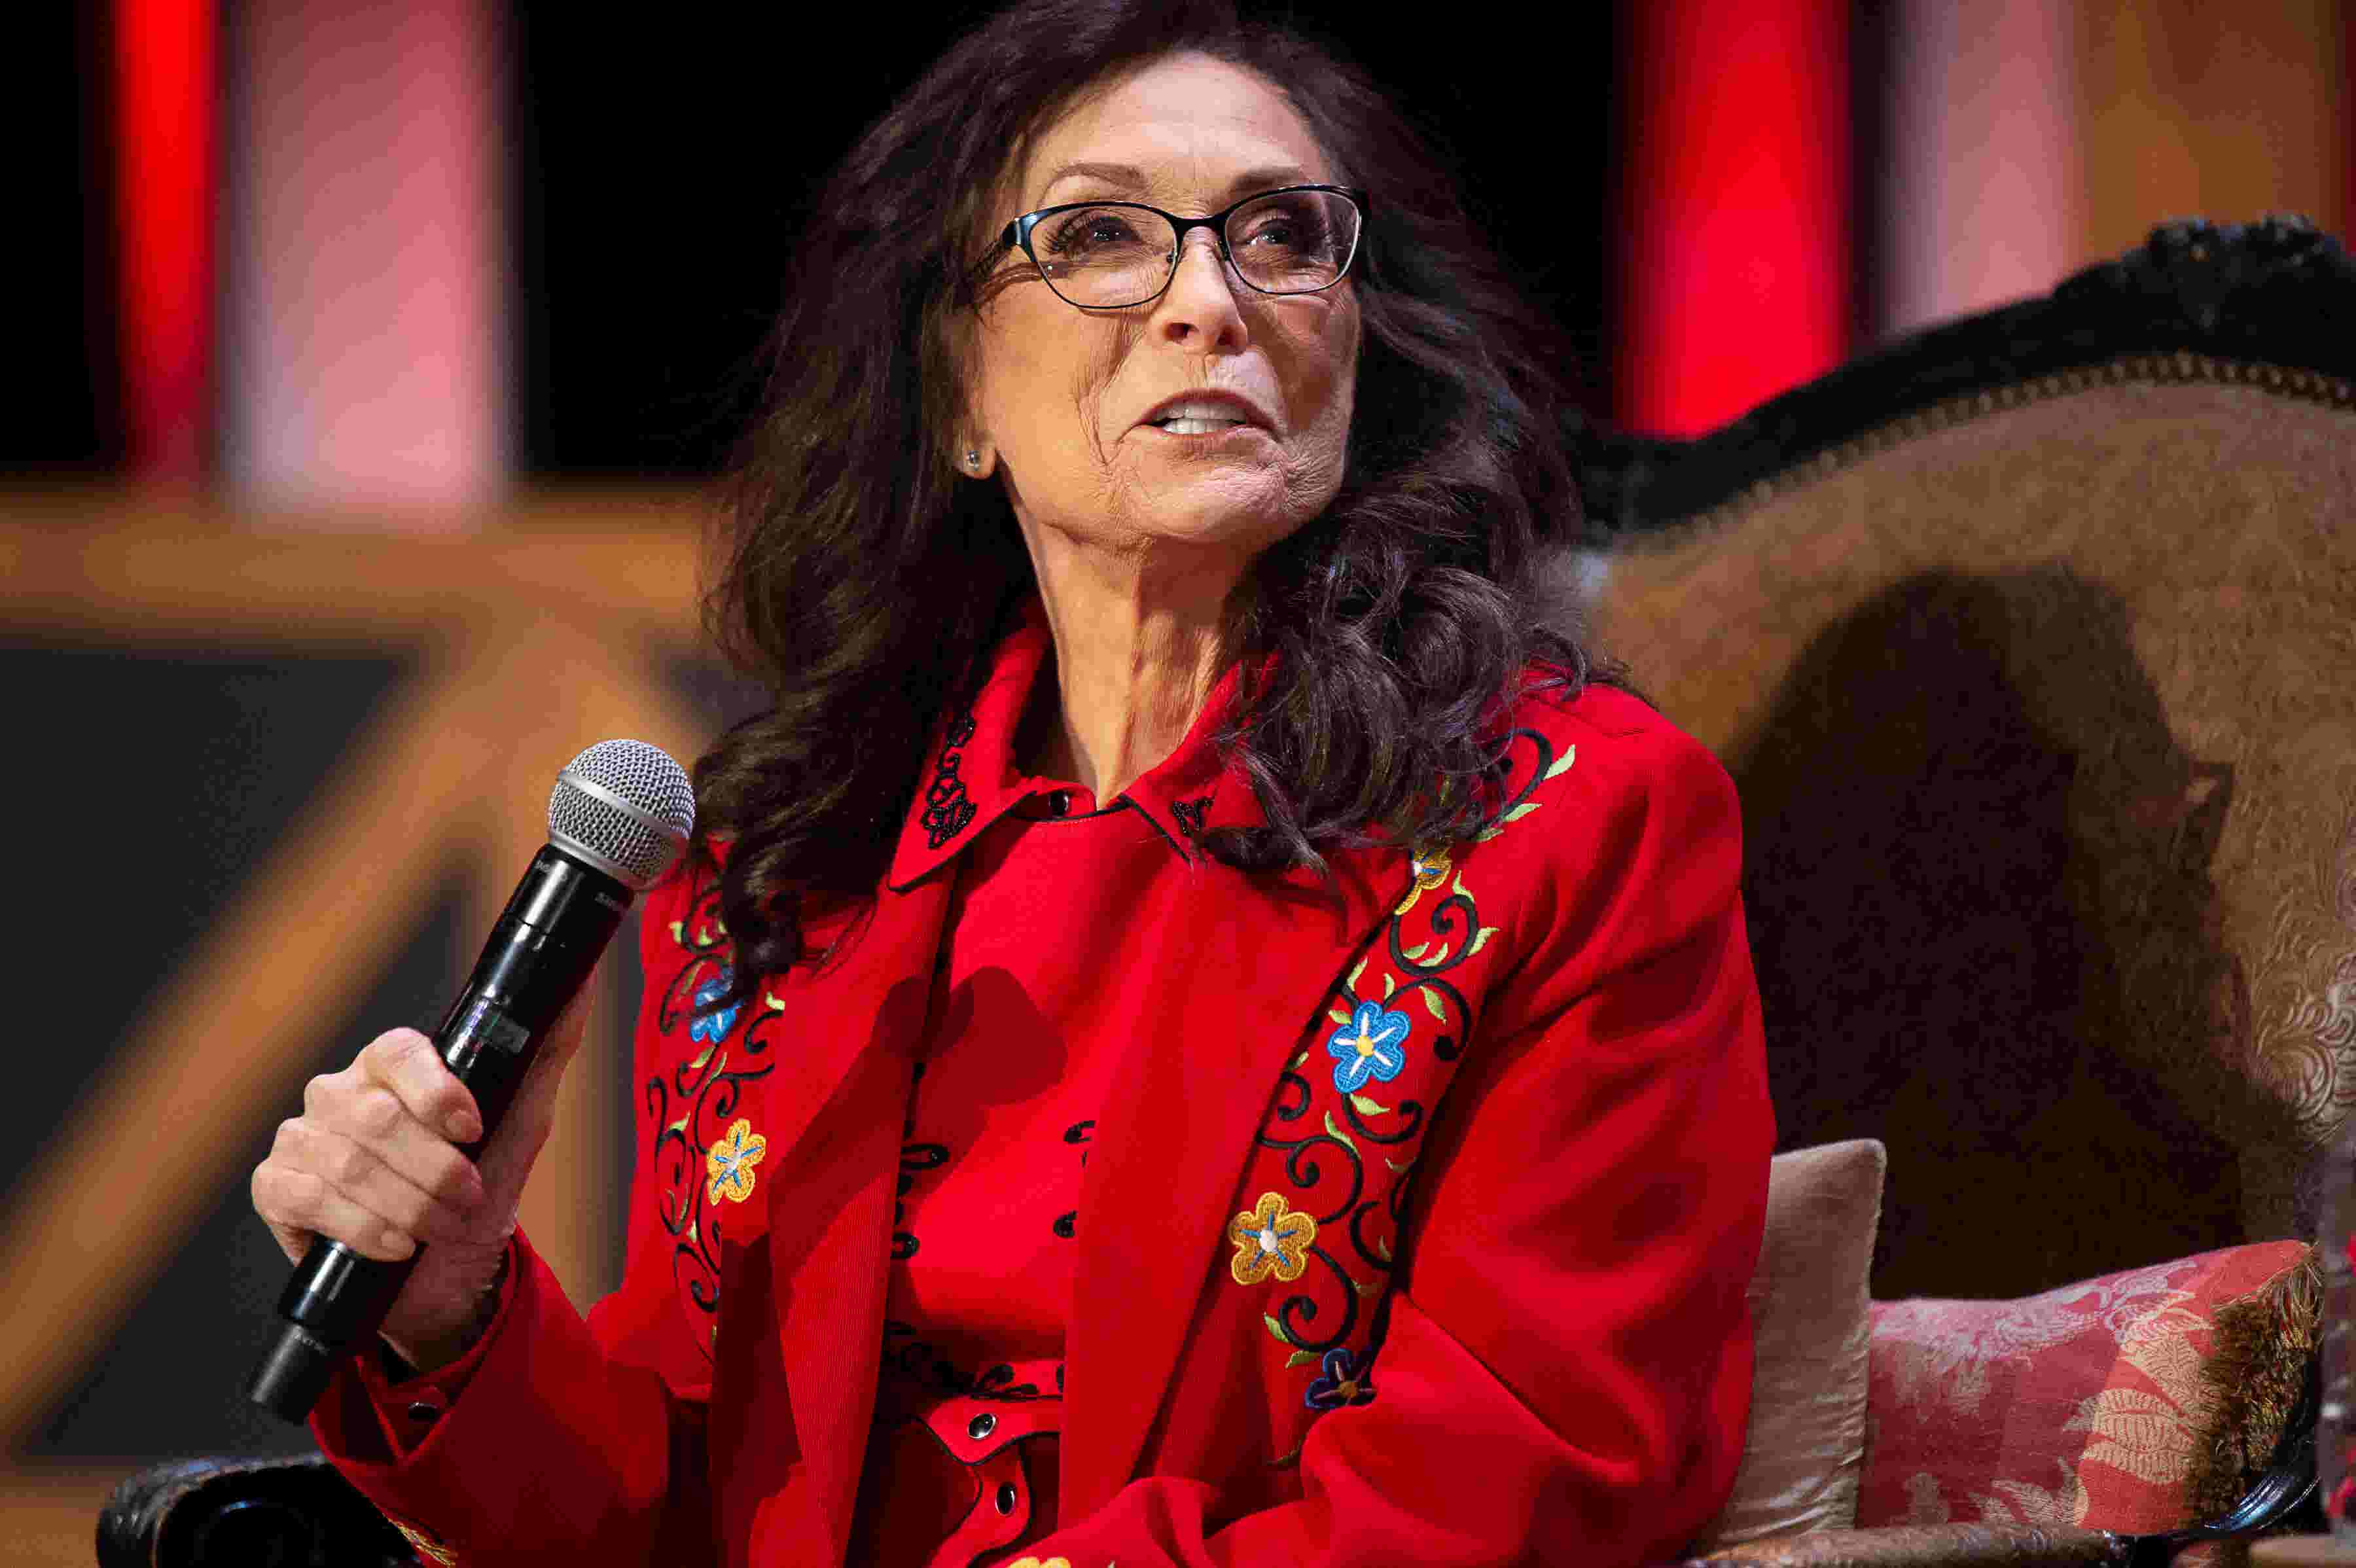 Loretta Lynn To Have Birthday All Star Concert Featuring